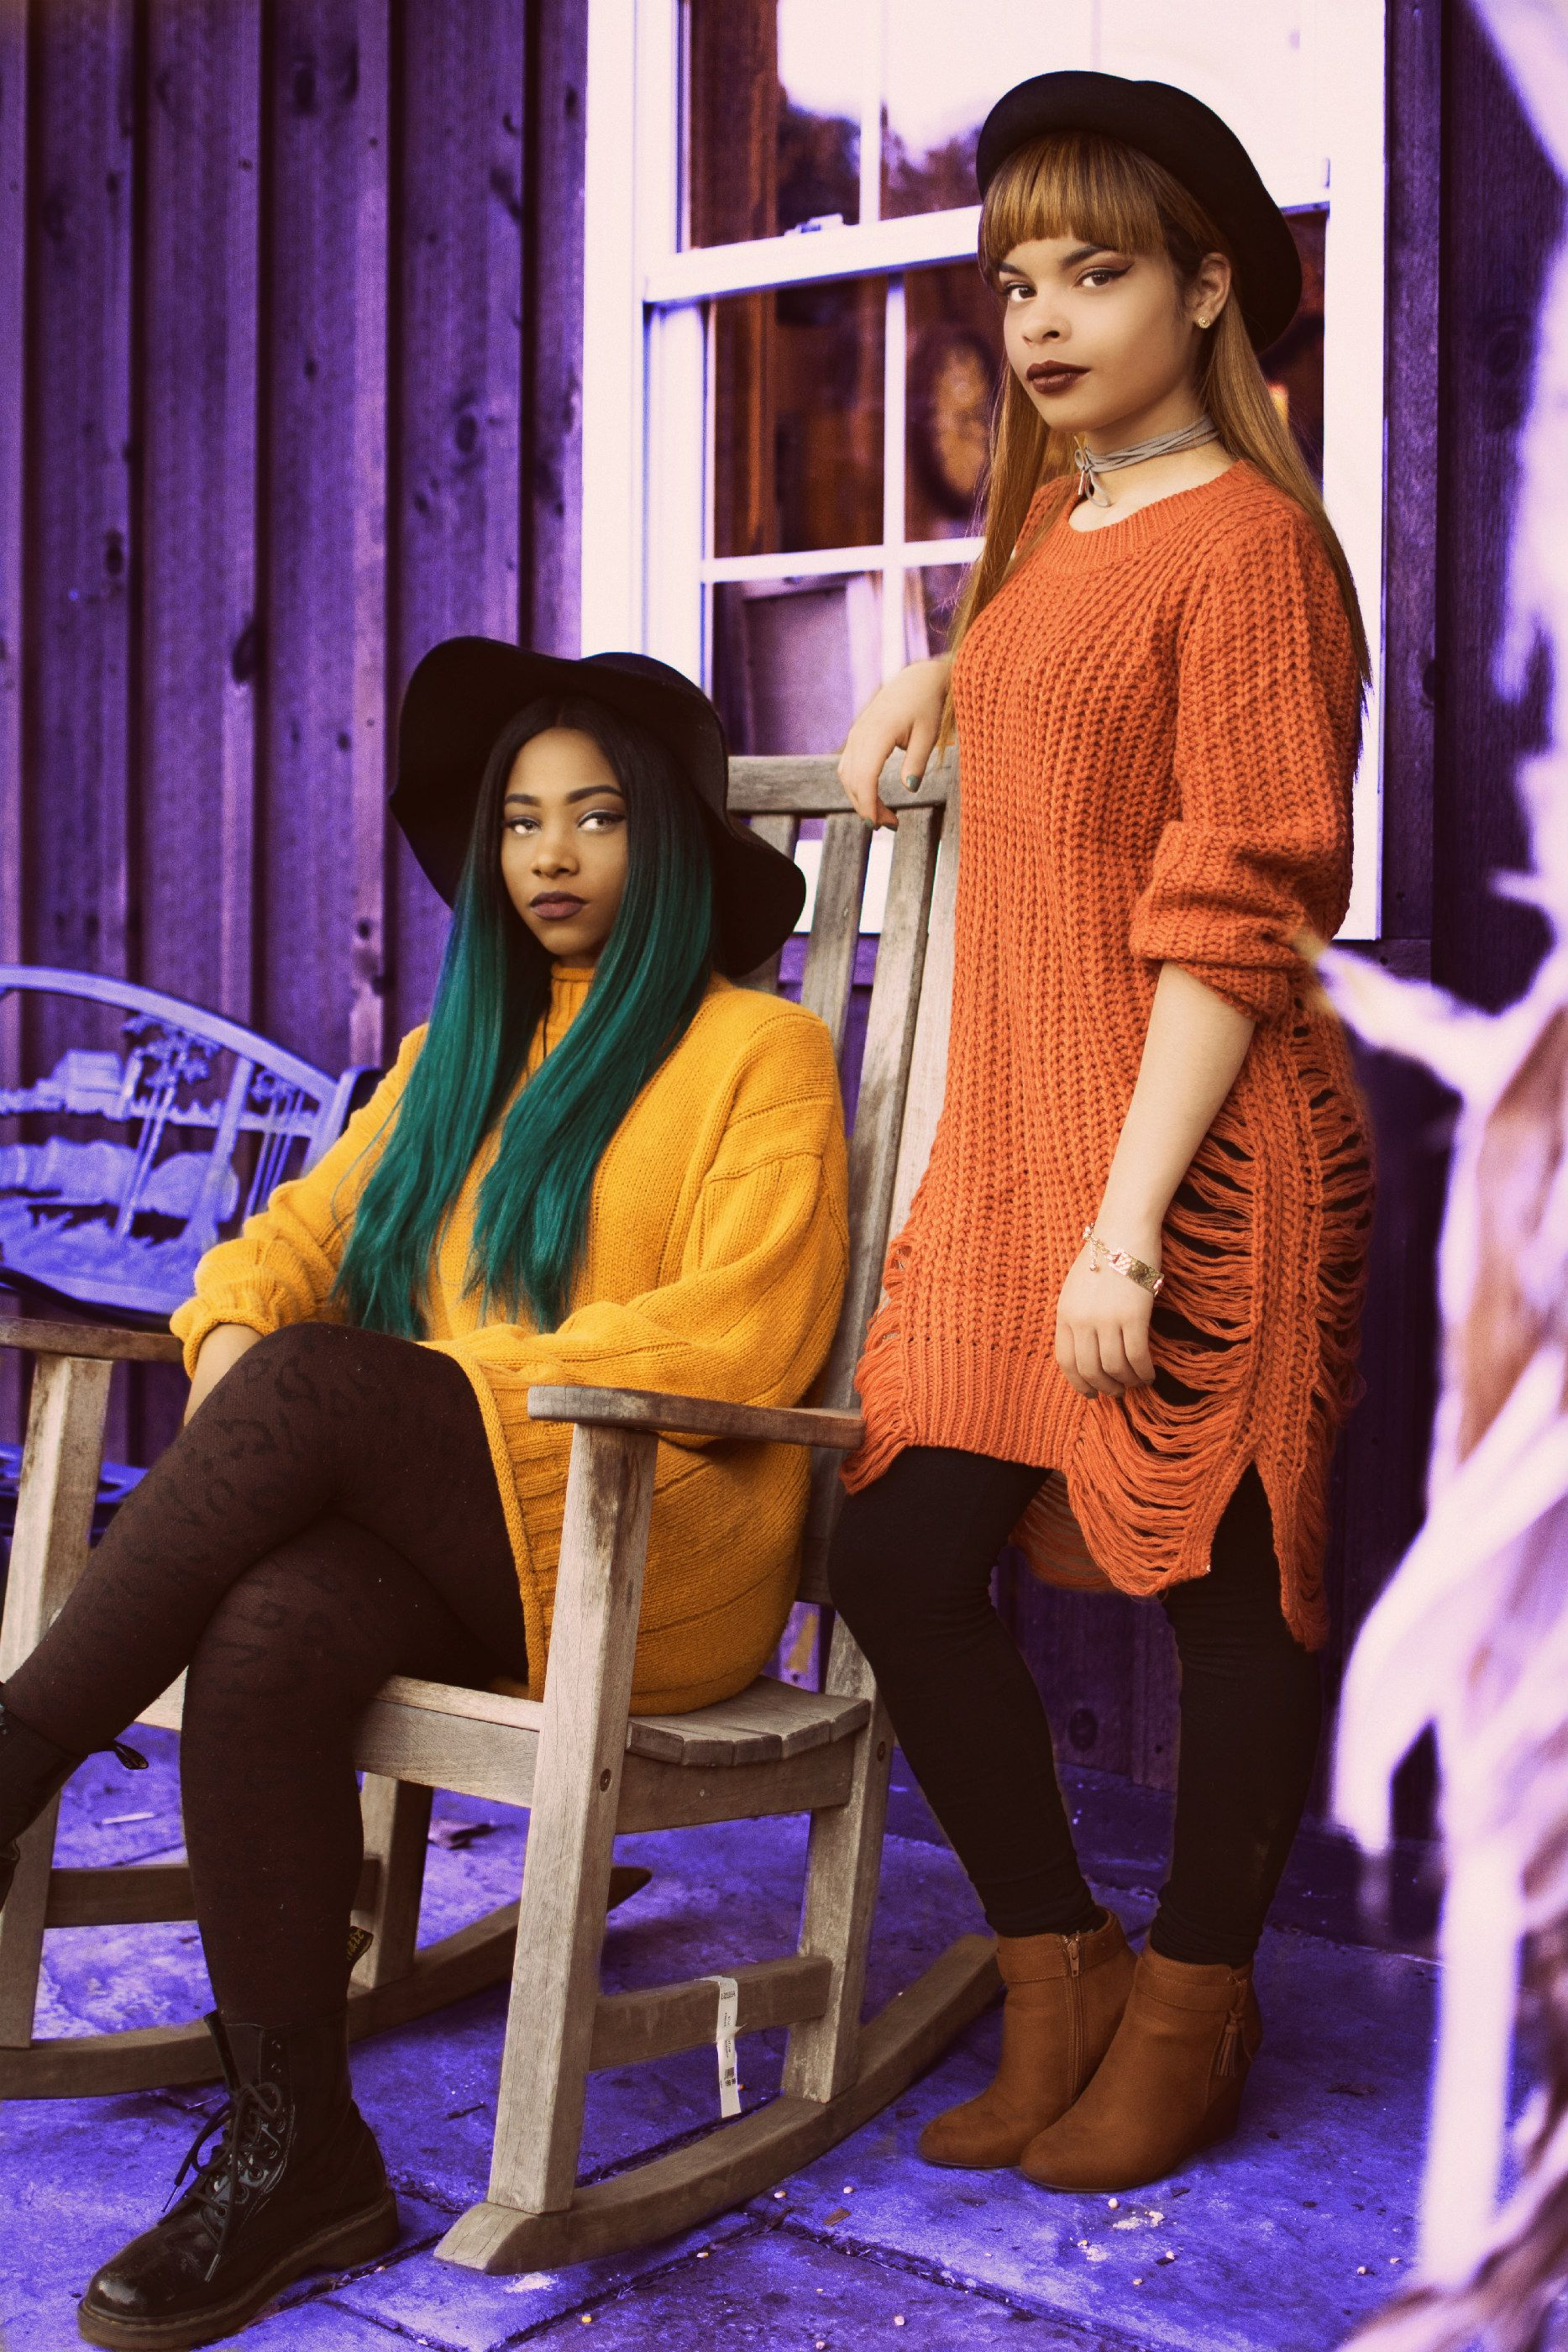 #witches #greenhair #blackgirl #orangesweater #wig #blackhat #makeup #fashion #style #halloween #witch #october #fall